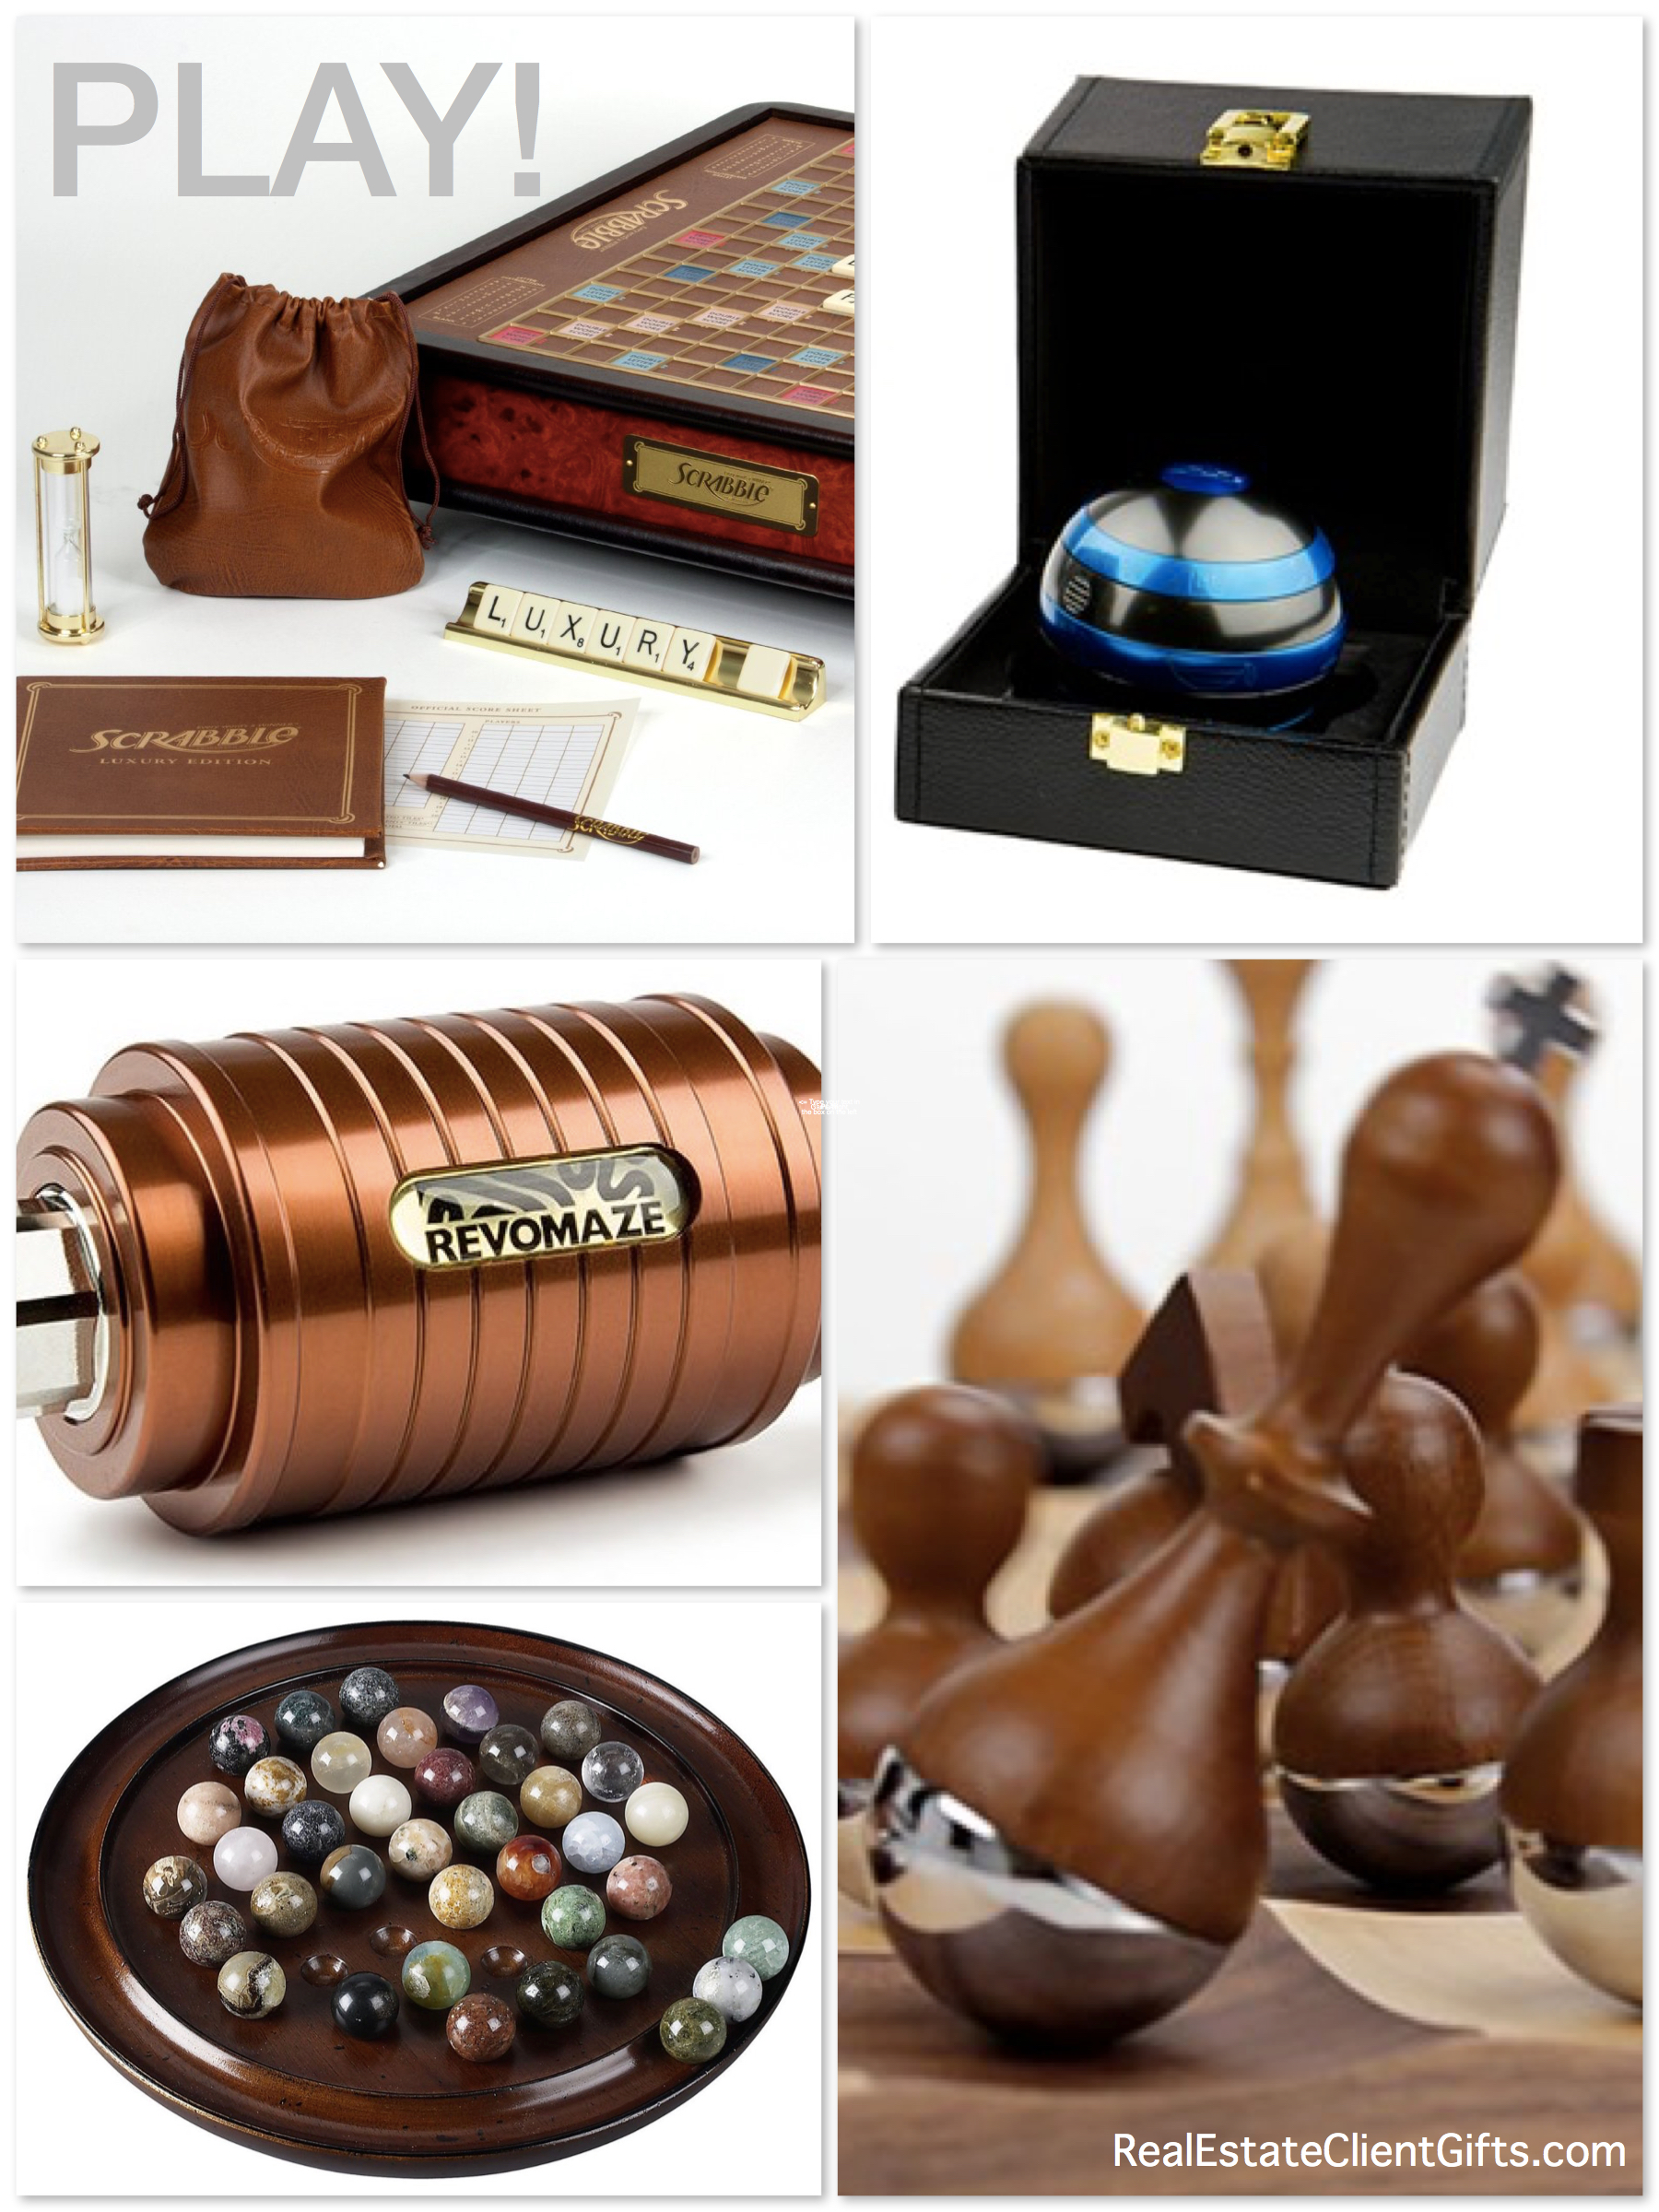 Luxury Games Company Holiday Gifts, Best Luxury Company Holiday Gifts